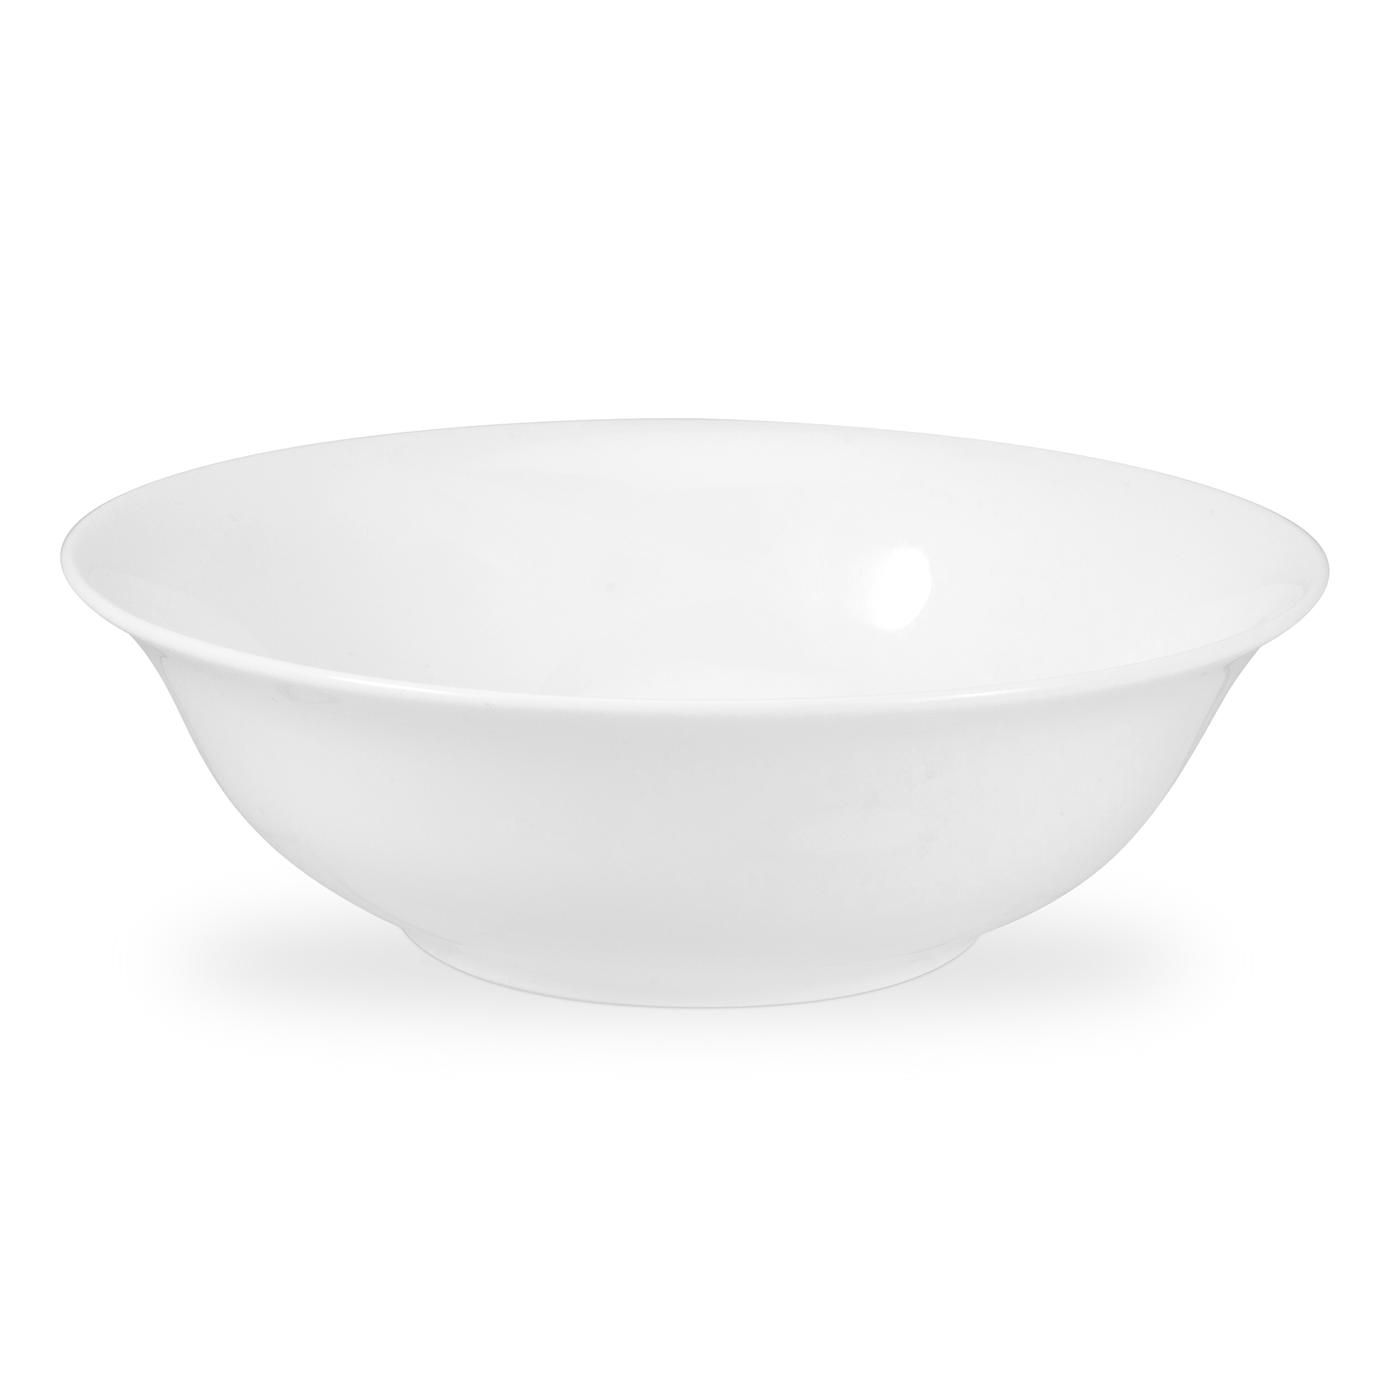 Royal Worcester Serendipity White Cereal Bowl